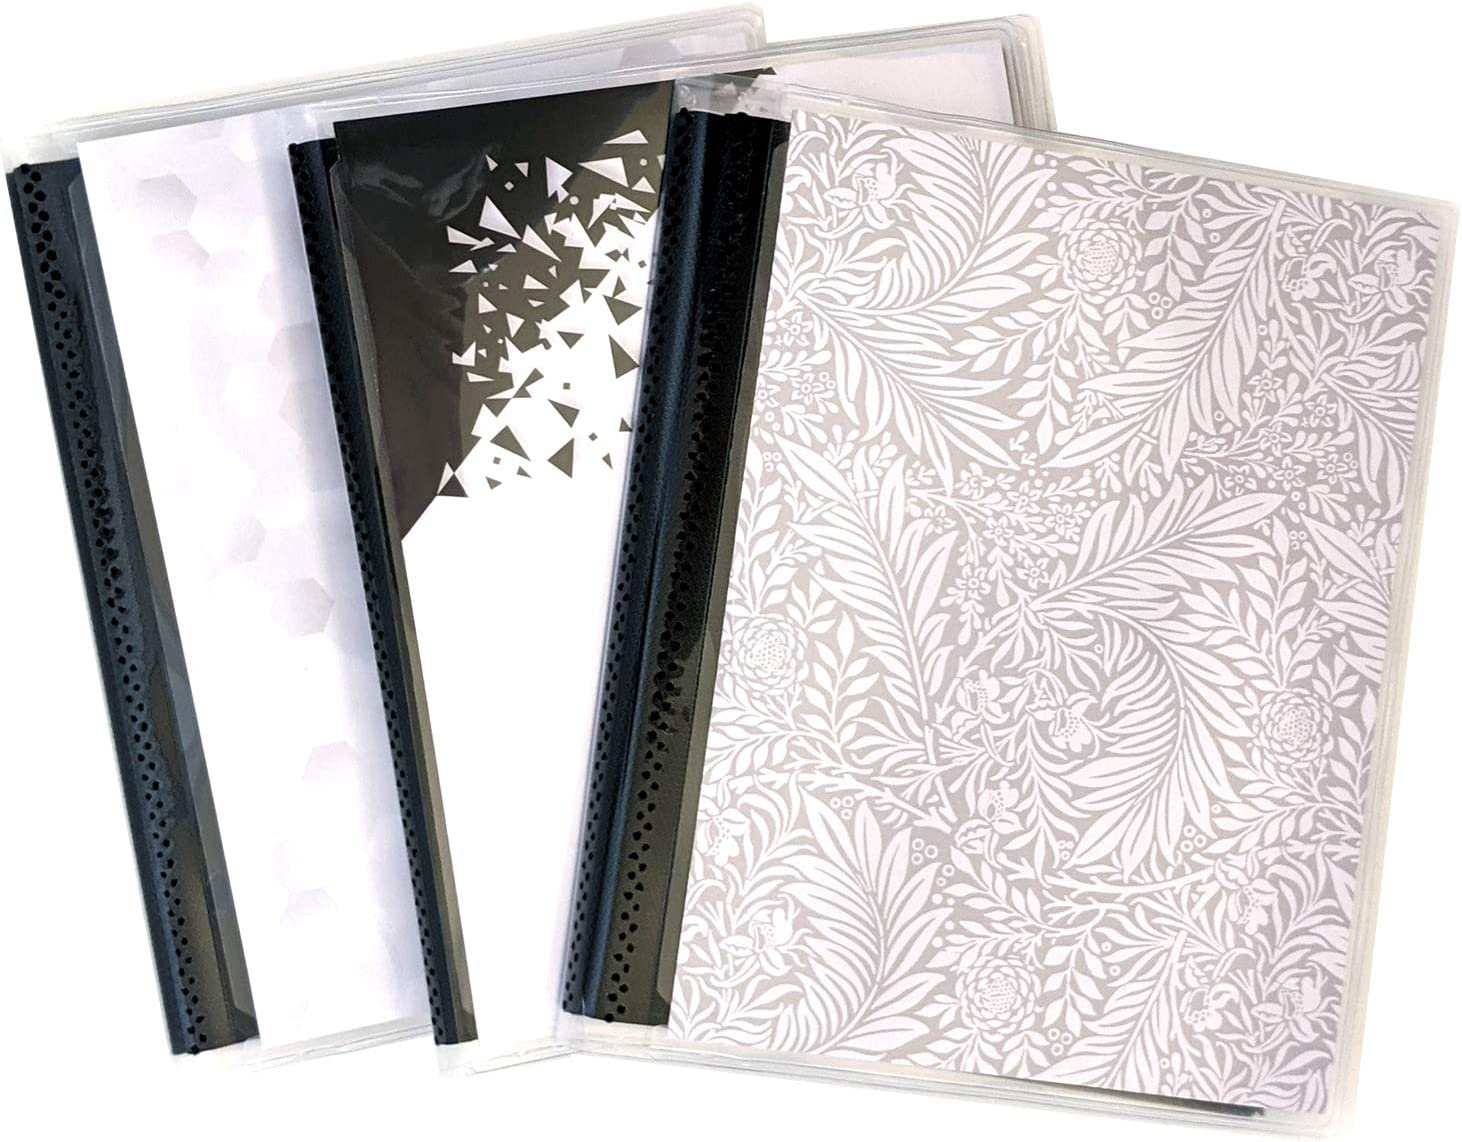 Flexible Bindings Hold Up to 48 4x6 Photos in Each Mini Photo Album. CocoPolka 3 Pack 4 x 6 Photo Albums with Pastel Covers with Removeable Cardstock Inserts in Covers